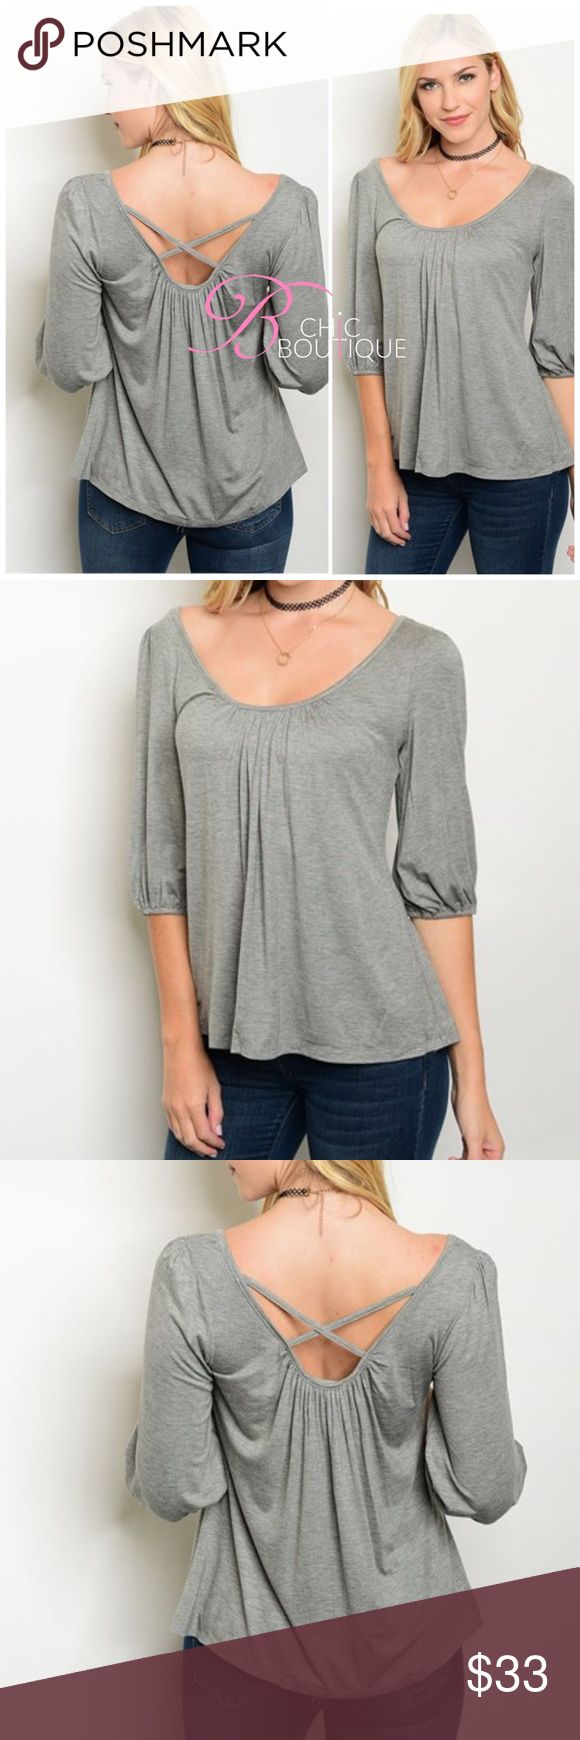 """❗Clearance❗Criss Cross Back Grey Top 3/4 smock sleeve scoop neck jersey top featuring criss cross style on the back. Made of Rayon/ spandex blend. Measurements for small length 25"""" Bust 40"""" Bchic Tops"""